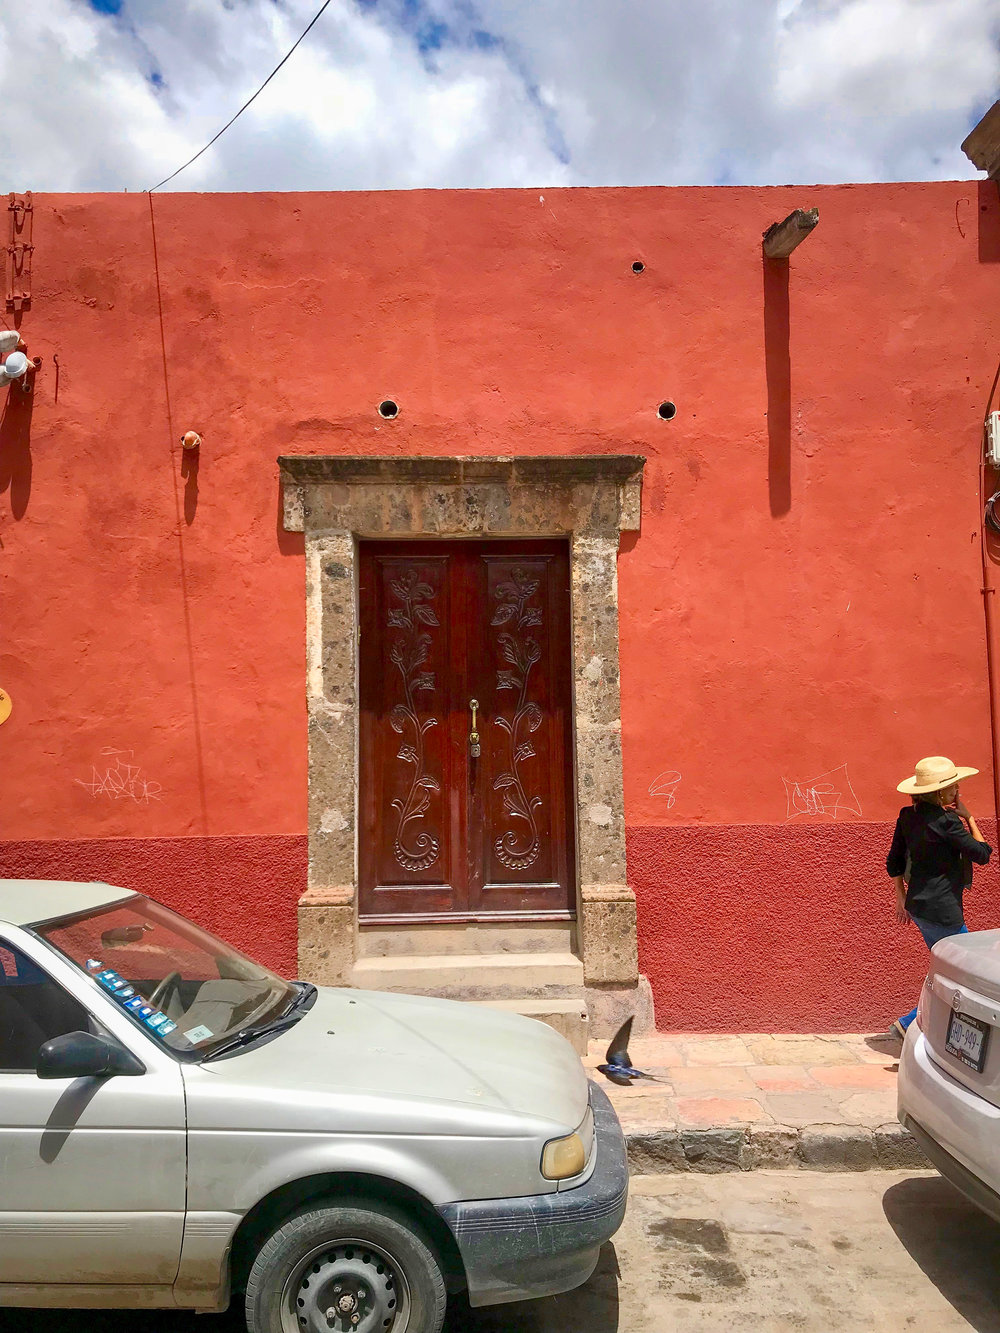 On of the intricately carved and designed doors in San Miguel de Allende, Guanajuato, Mexico.